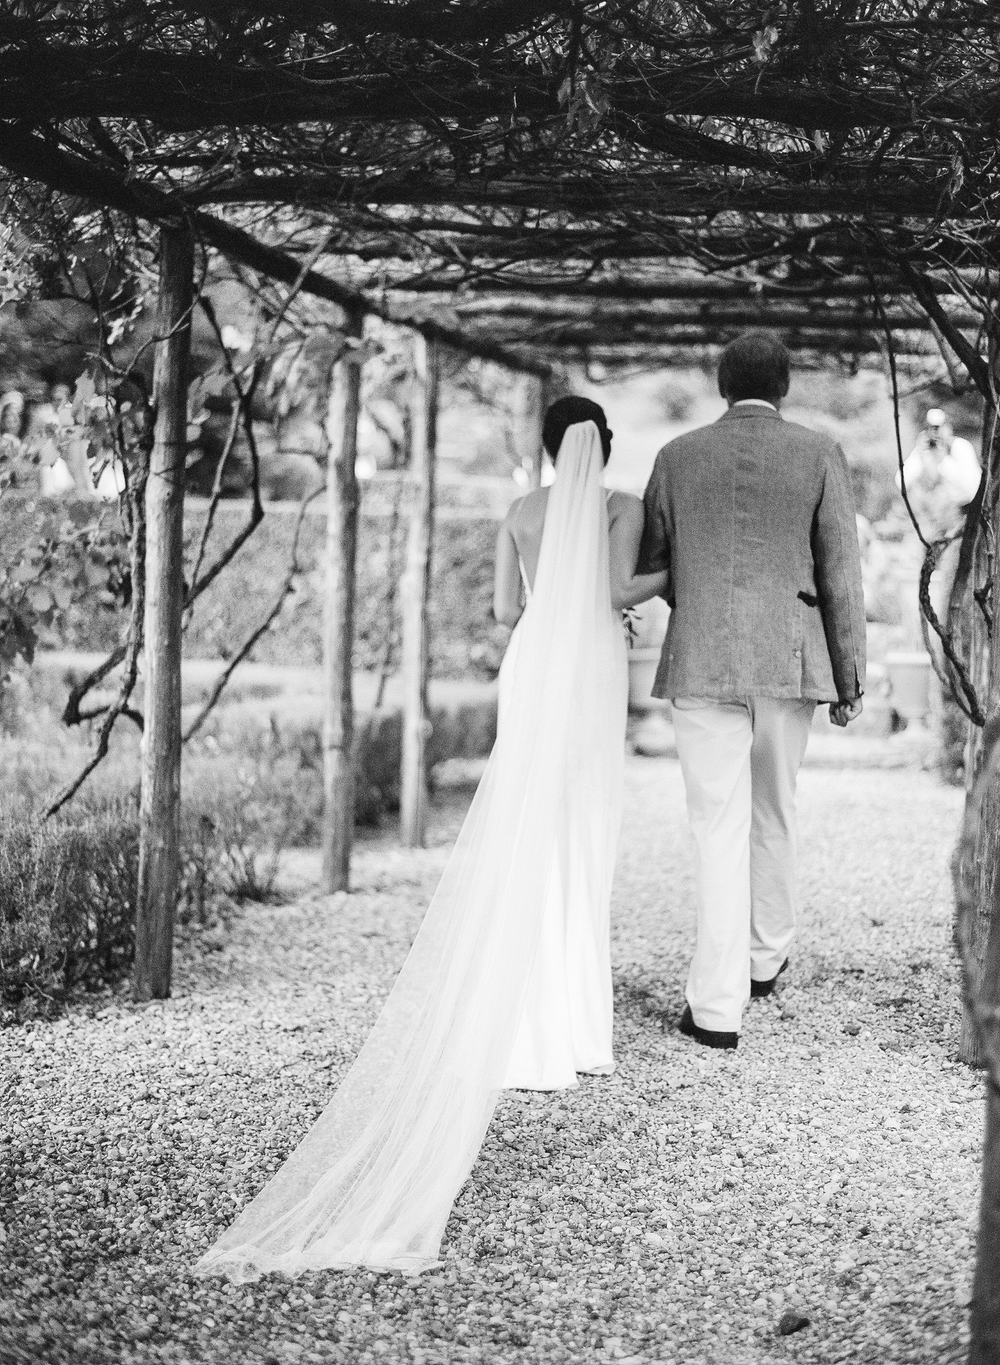 Amelie and her father walk up a gravel path to the chapel, arm in arm; photo by Sylvie Gil